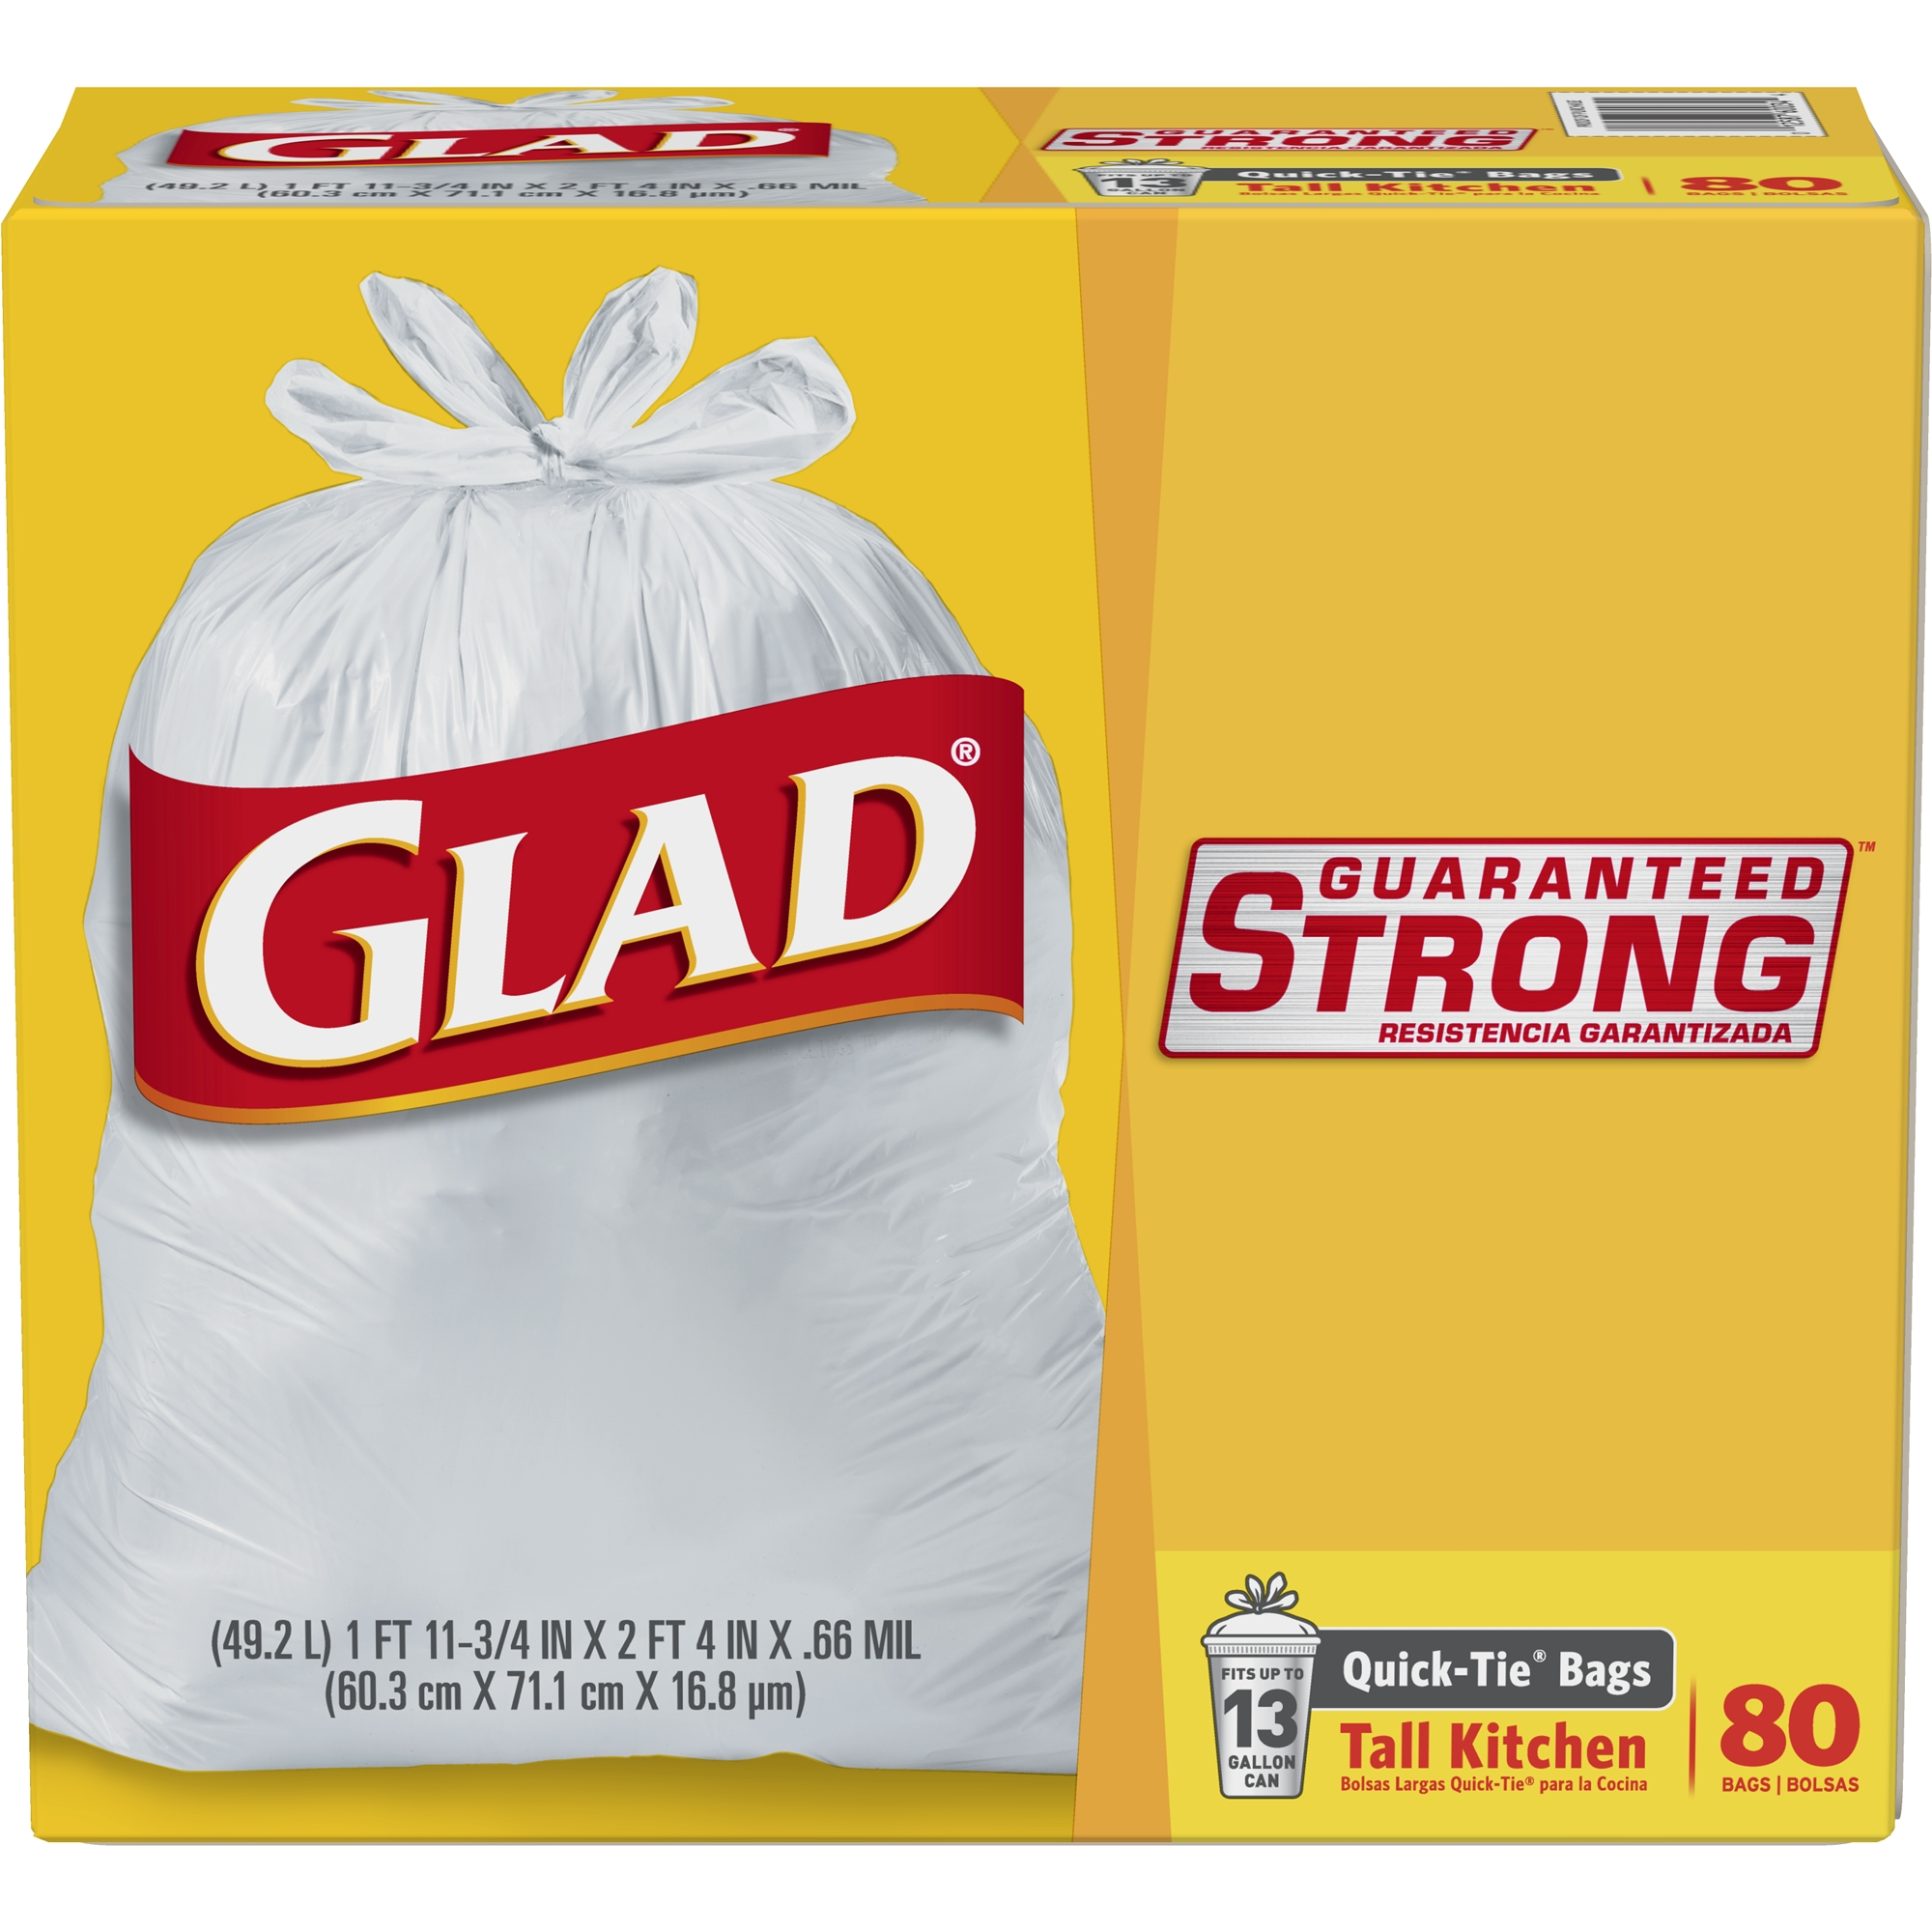 Glad Quick-Tie Tall Kitchen Trash Bags - 13 gal - 80 ct